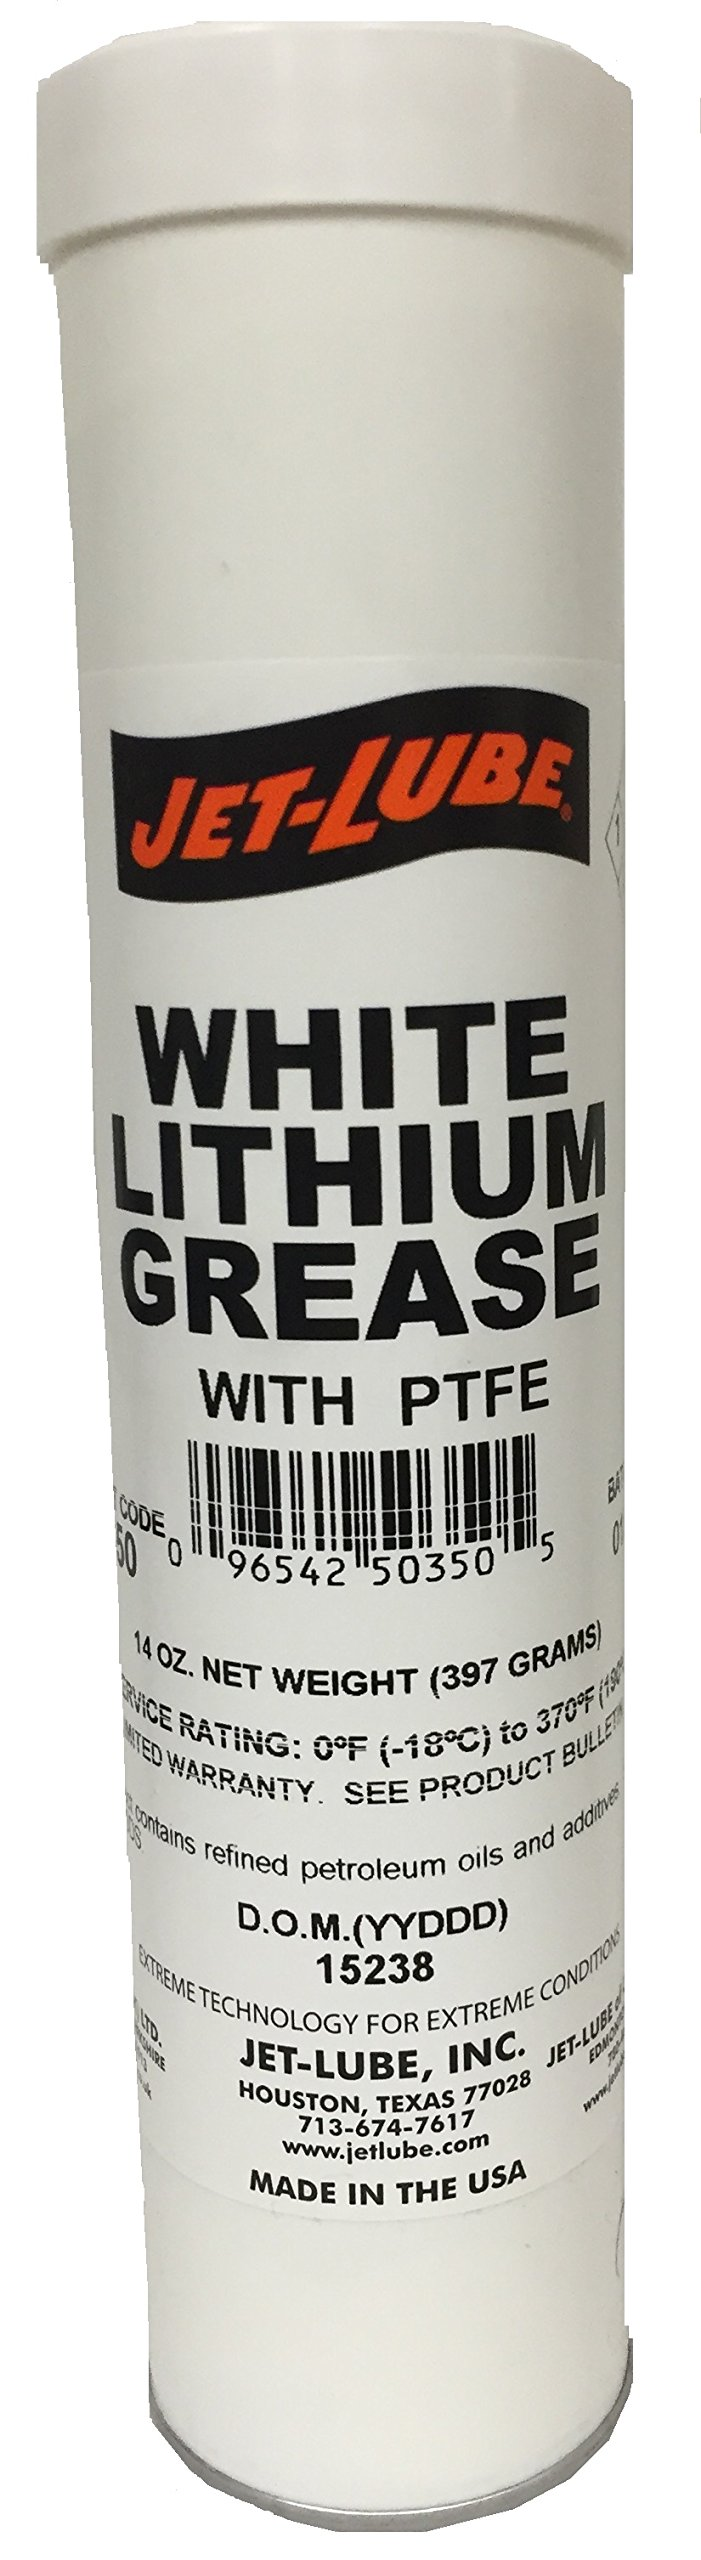 Jet-Lube 50350 Lithium Grease with PTFE, 0 to 370 degrees F, 2 NLGI Number, 14 oz Cartridge, White